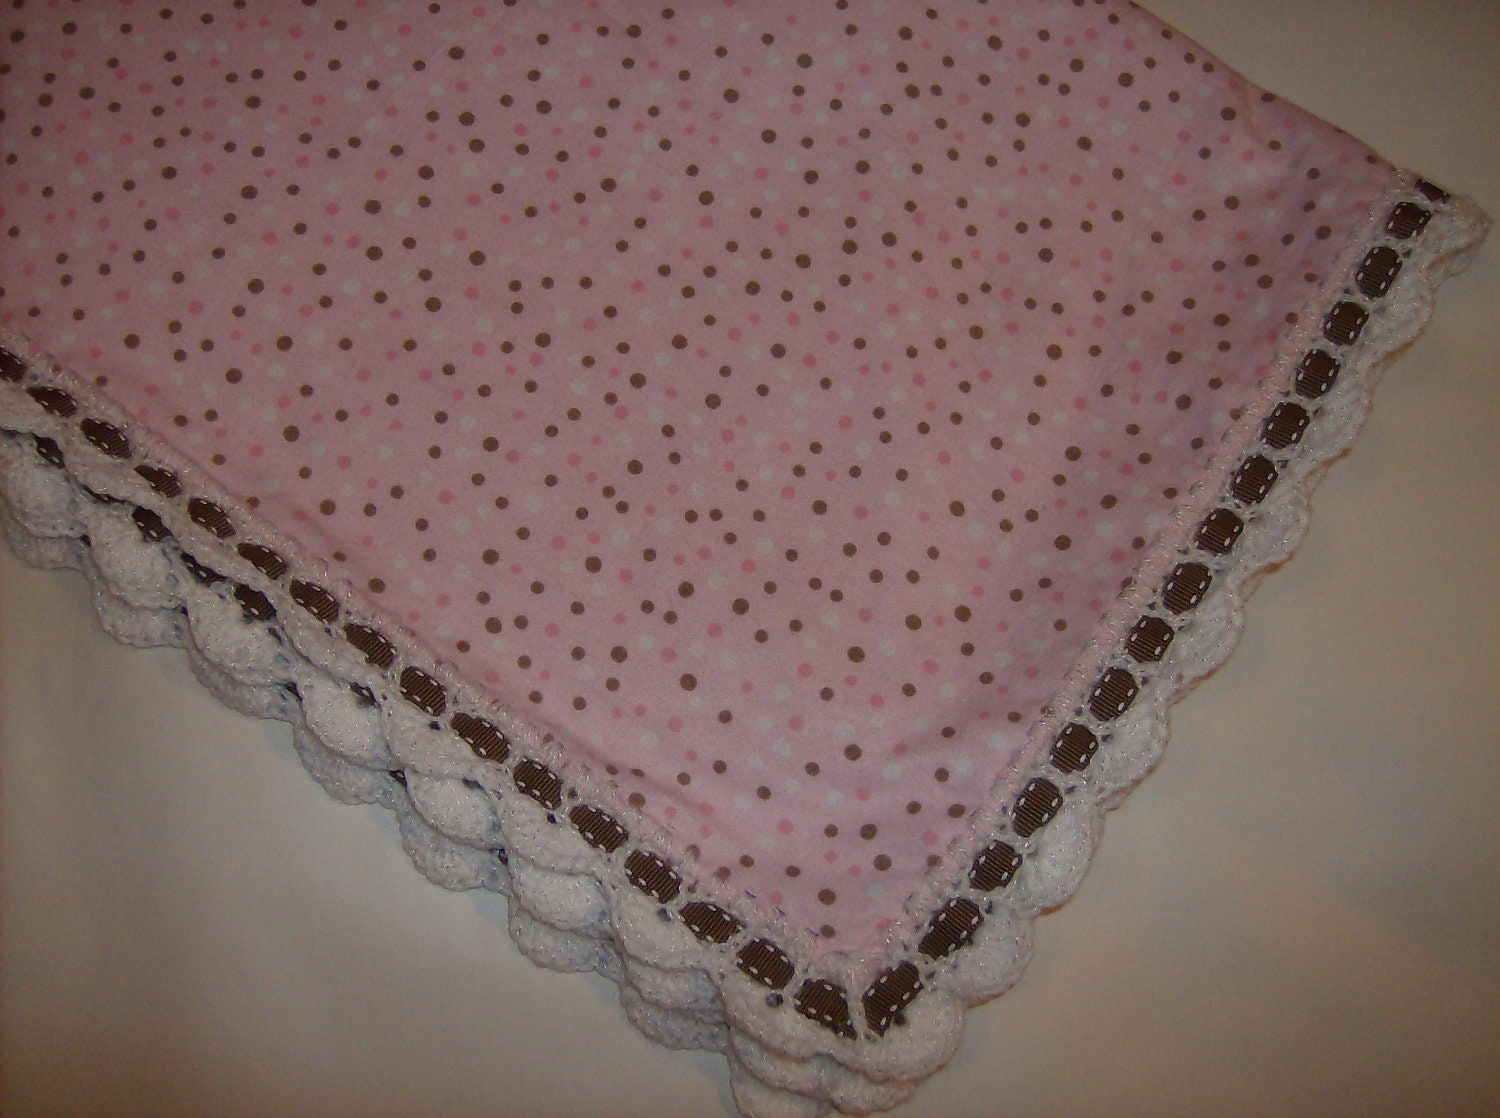 Crocheting Edges On Baby Blankets : Pink Flannel Baby Blanket with Crochet Edging by sherrywilsew